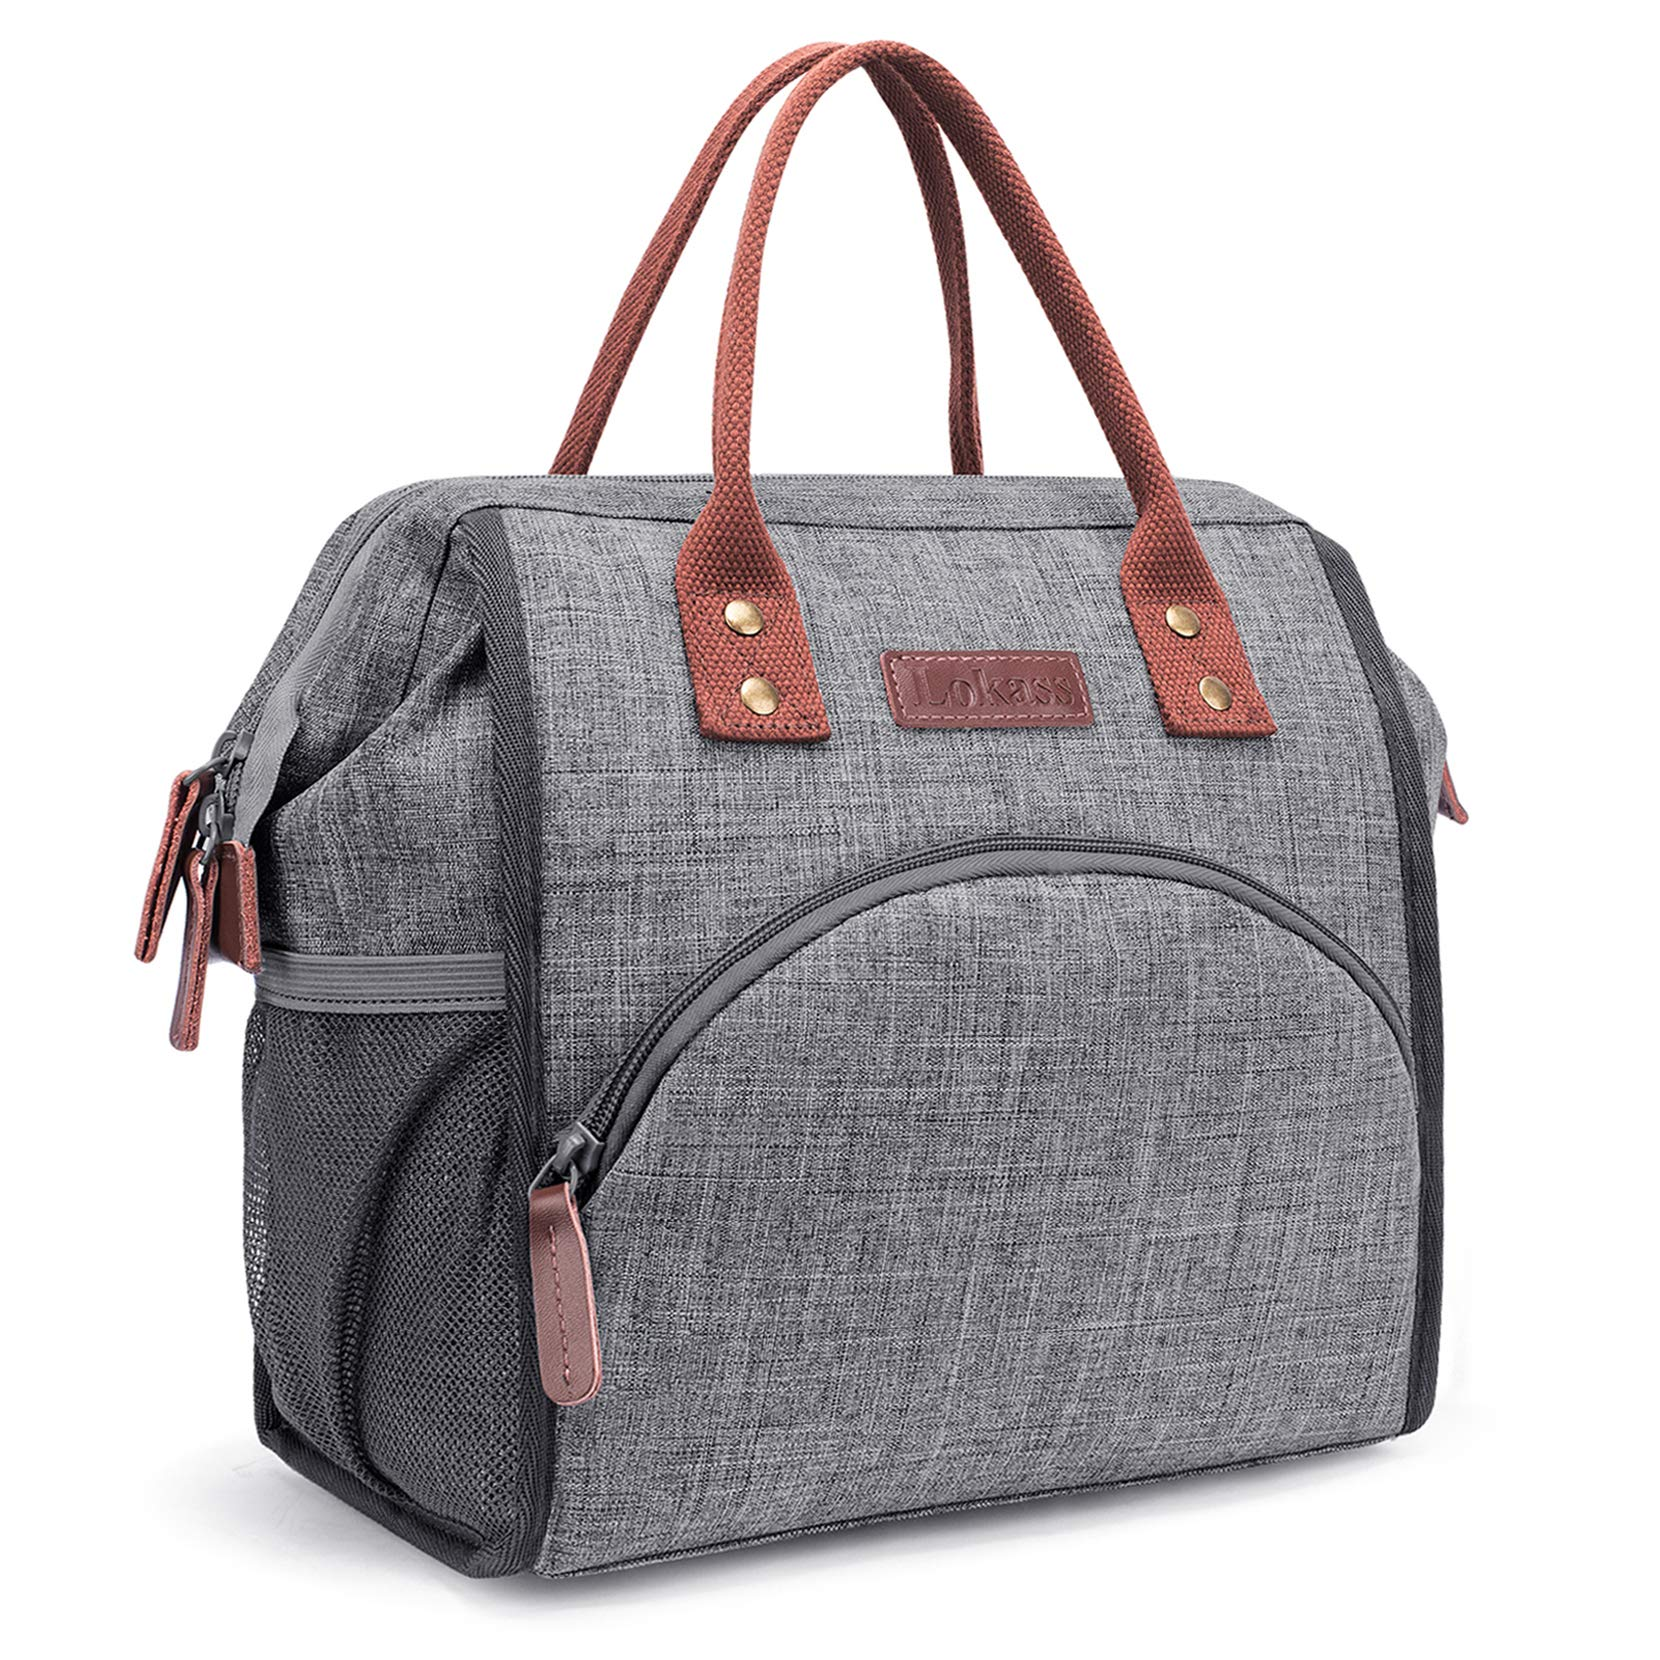 LOKASS Lunch Bag Insulated Lunch Box Wide-Open Lunch Tote Bag Large Drinks Holder Durable Nylon Thermal Snacks Organizer for Women Men Adults College Work Picnic Hiking Beach Fishing,Grey by LOKASS